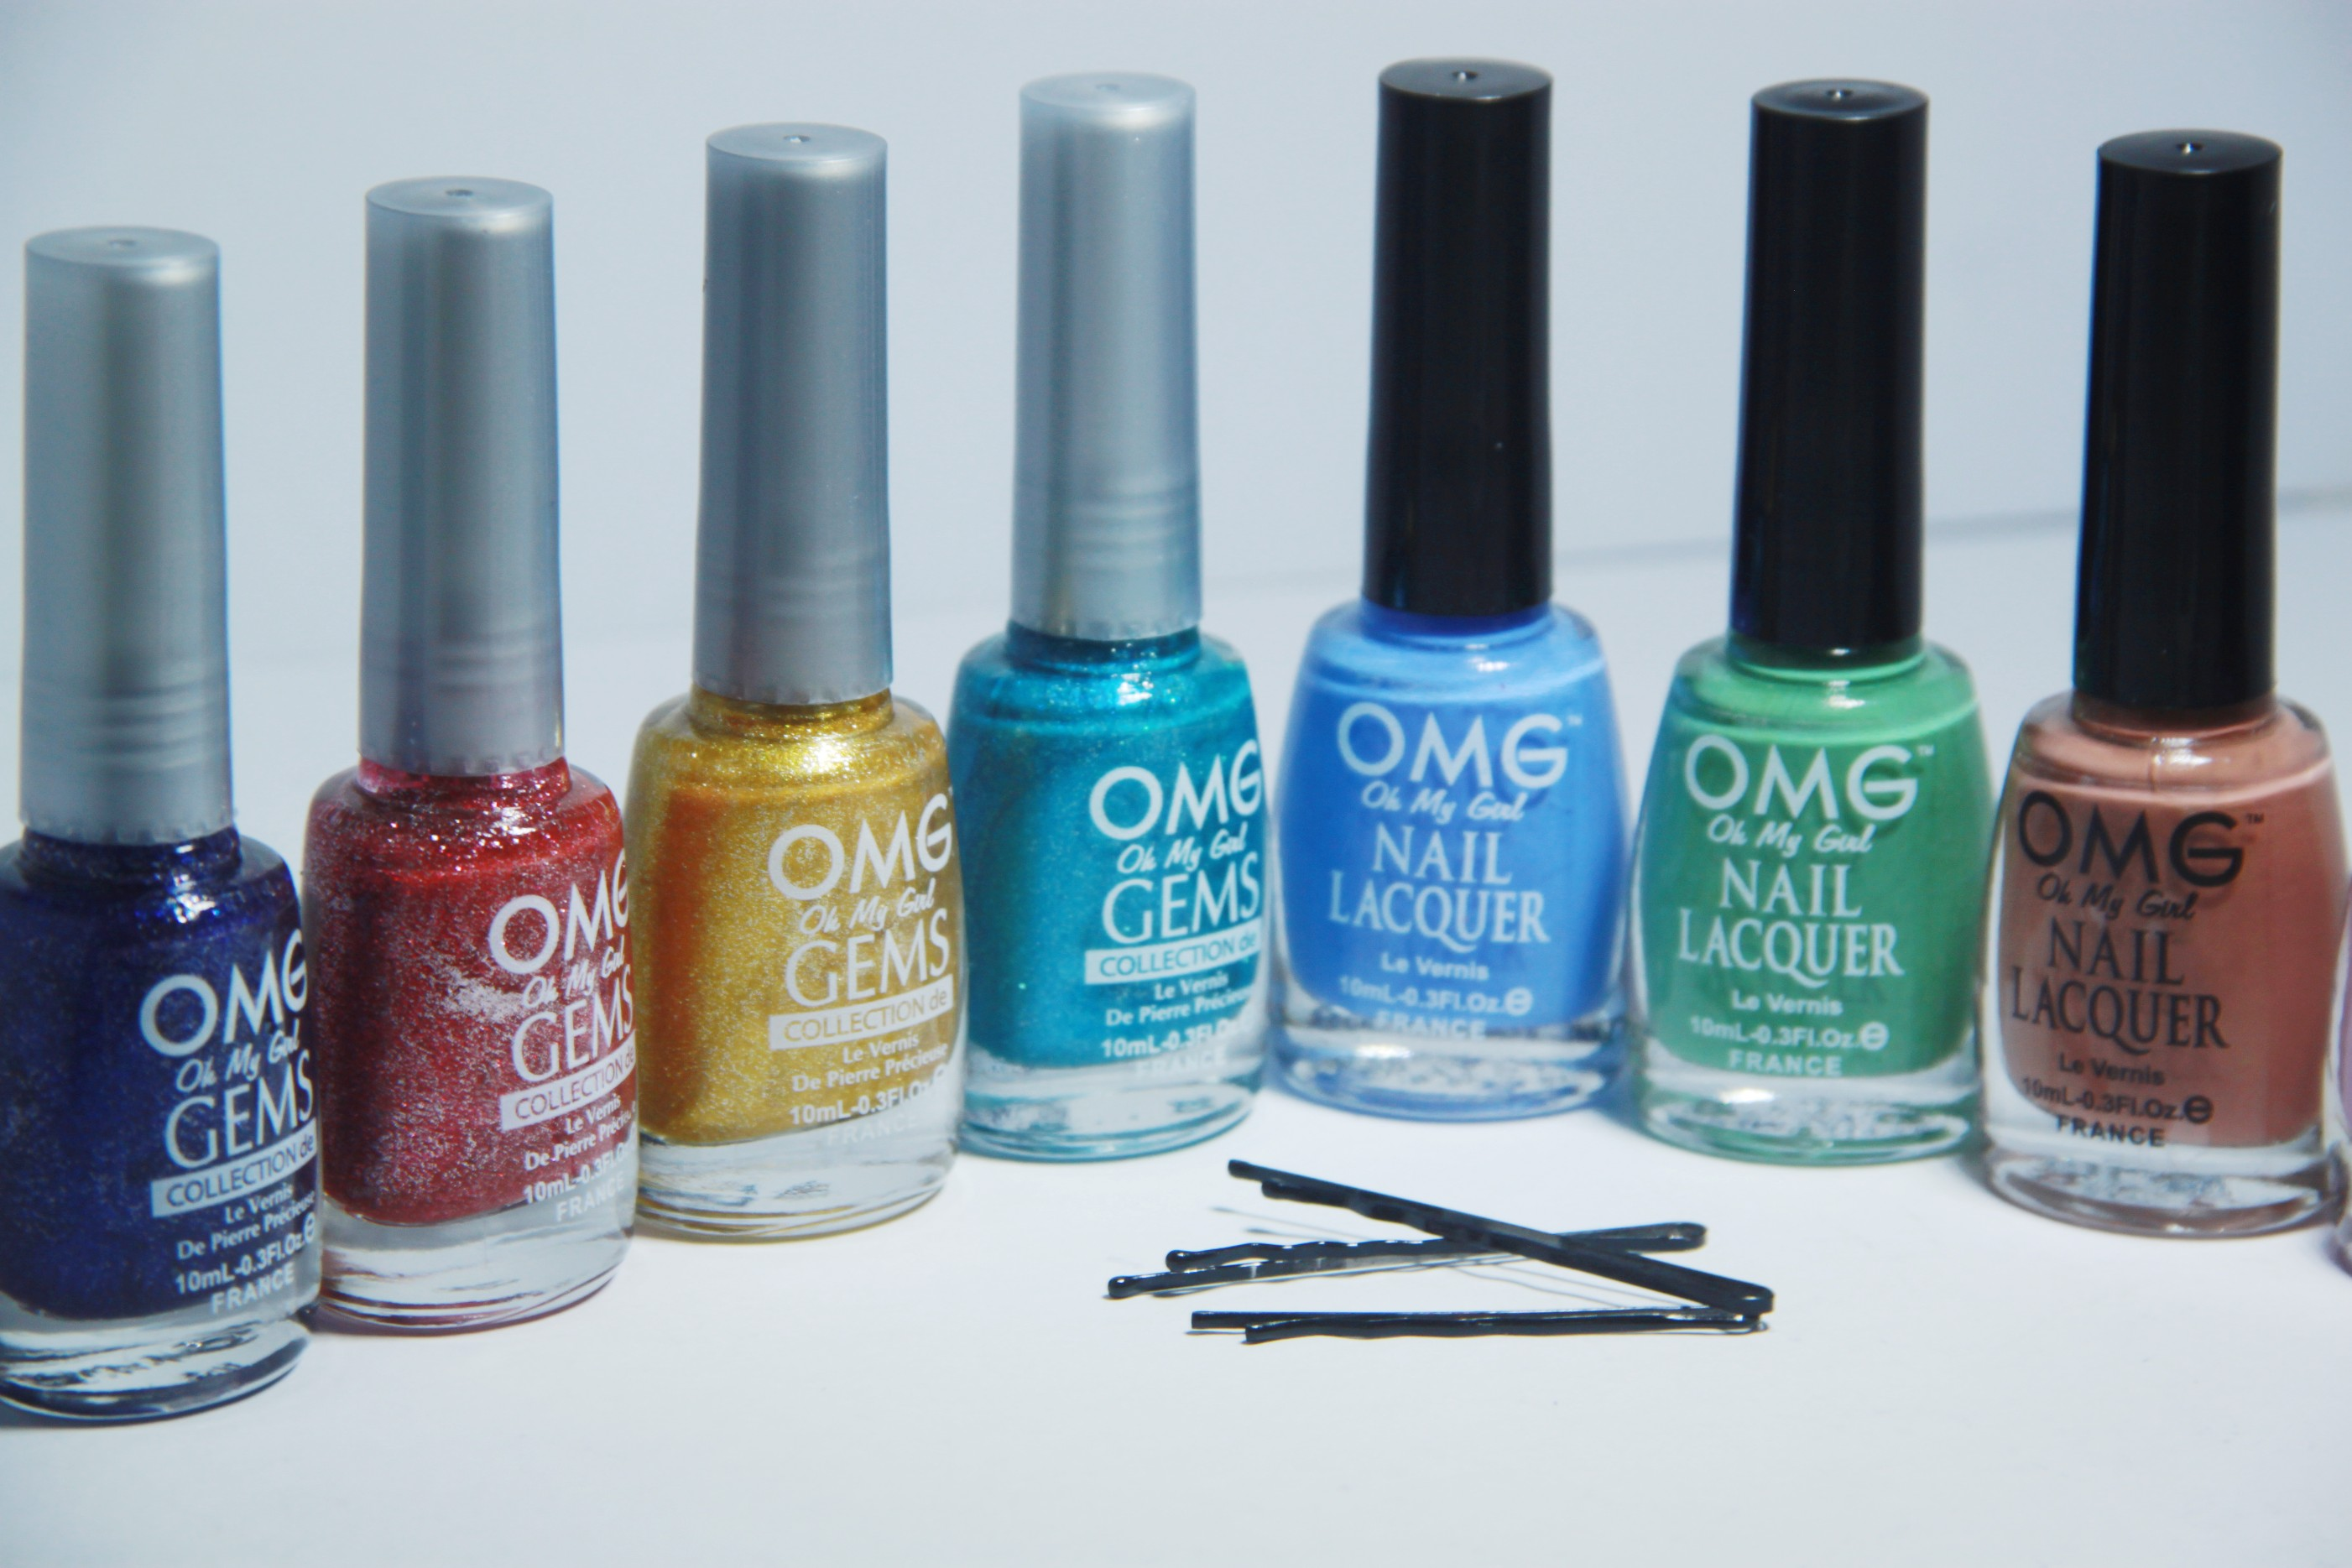 OMG Nail Hacks: Nail art tools from home